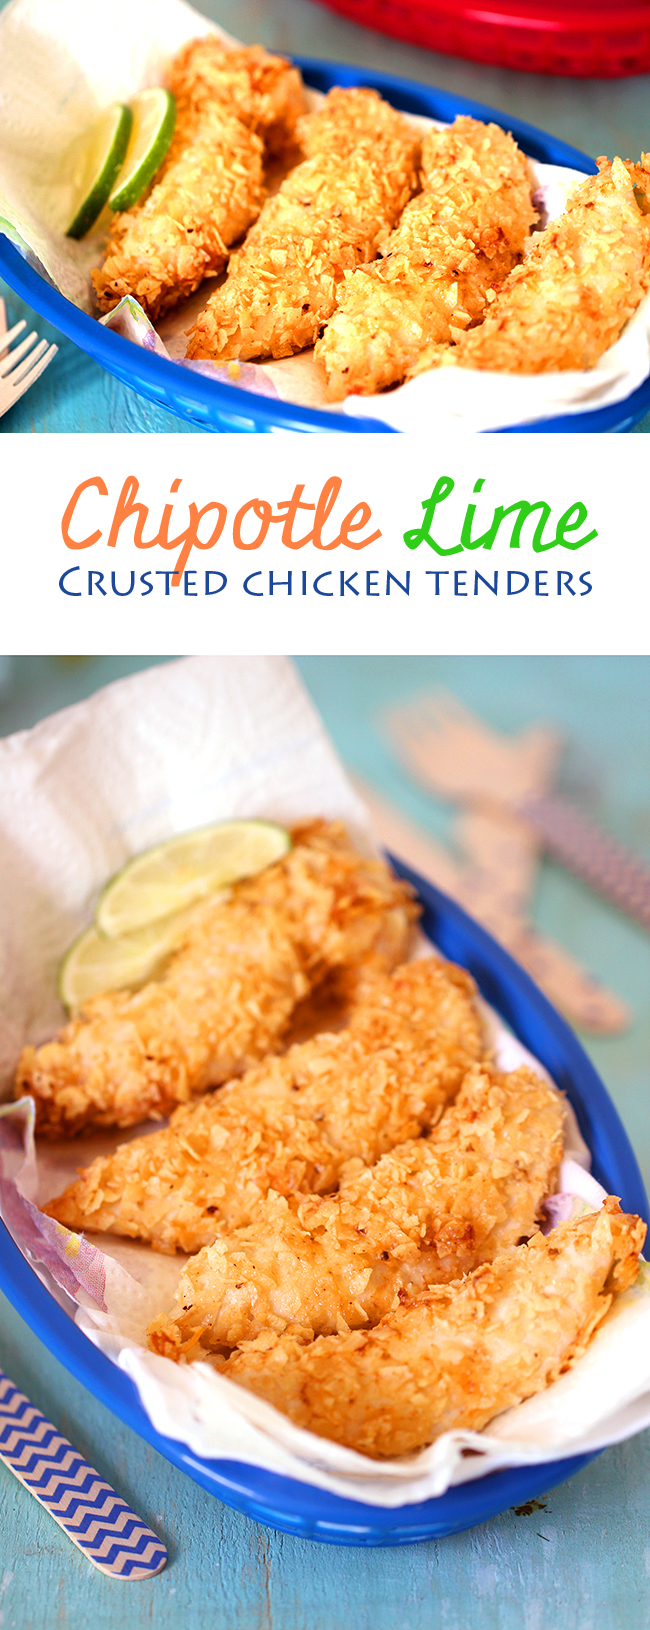 Take it from blah to FIESTA time with these knock your socks off Chipotle Lime Crushed Chicken Tenders. Bake in only 20 mins! Woot!